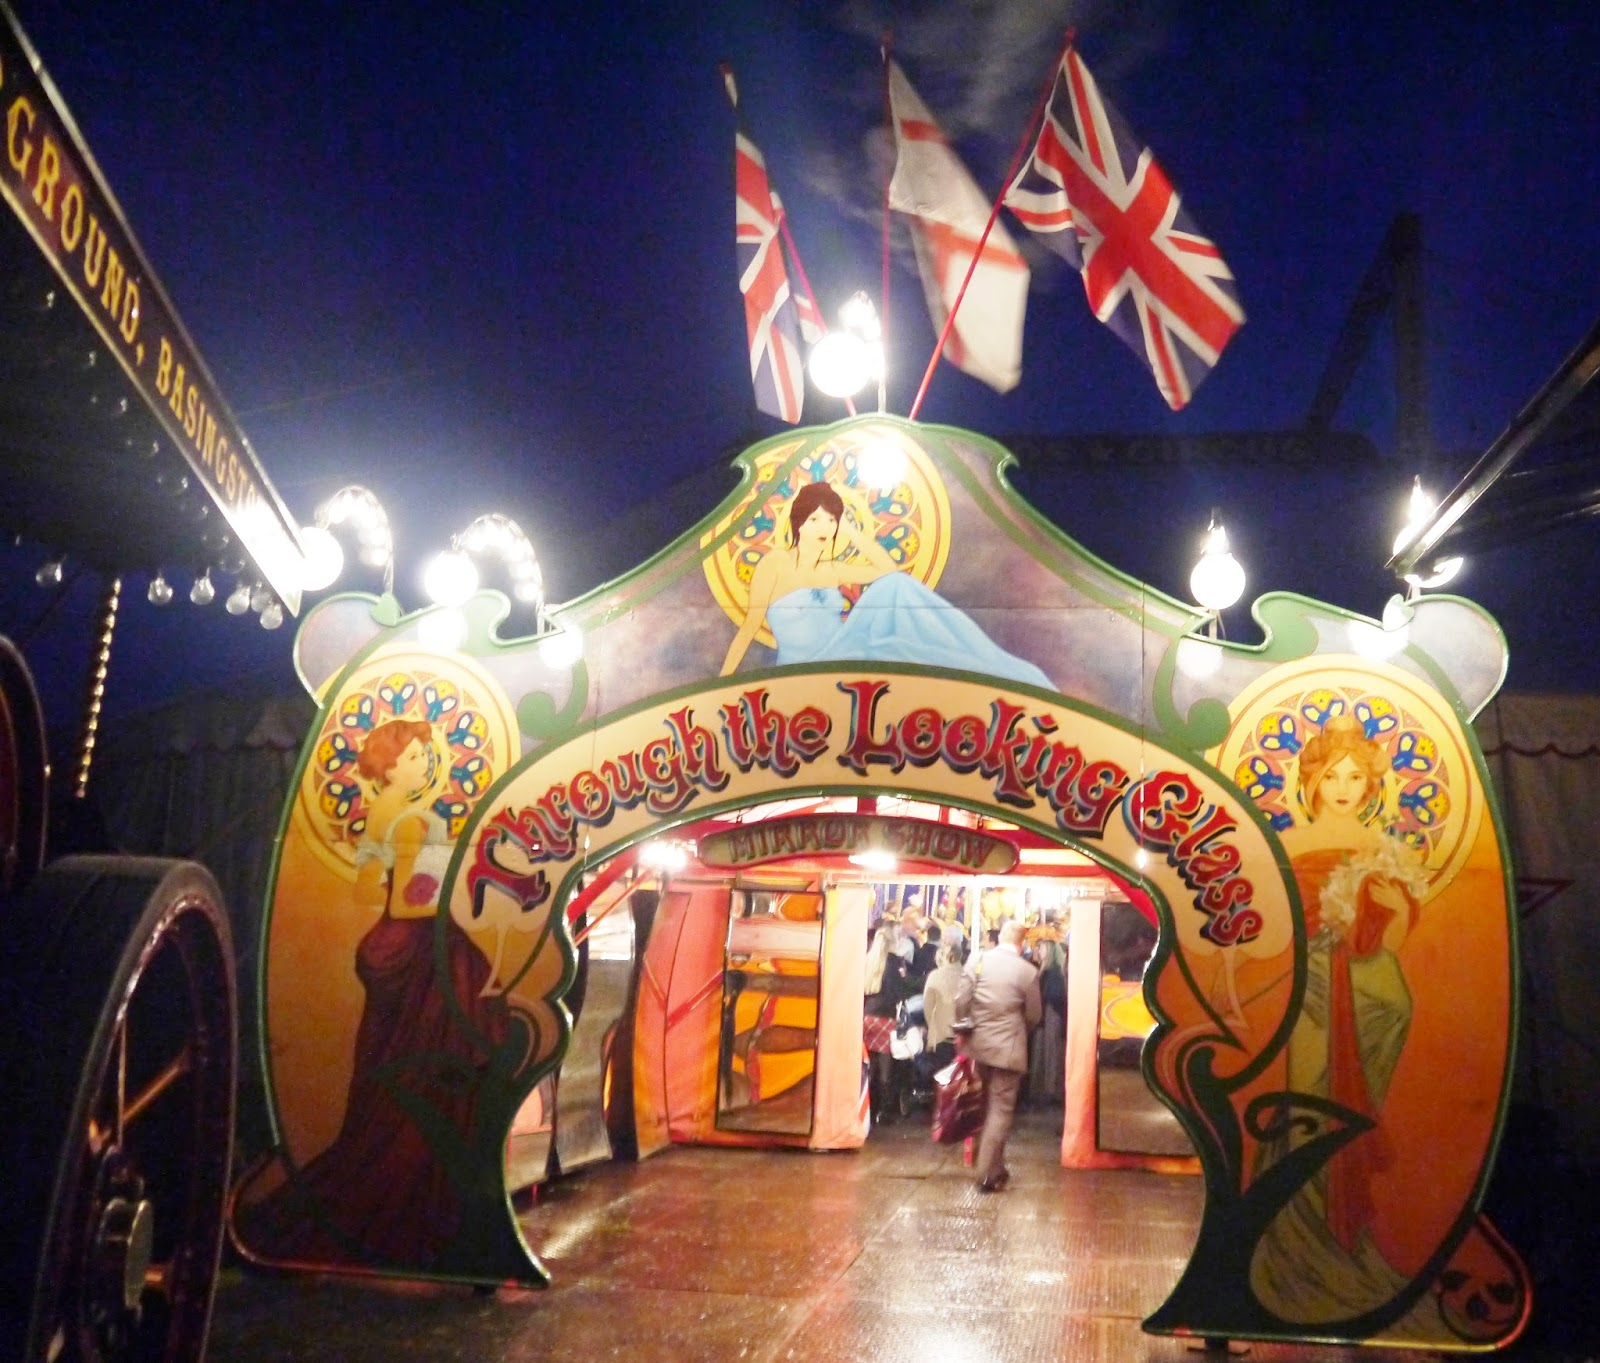 Carters Steam Fair Wedding - Entrance to the Big Top